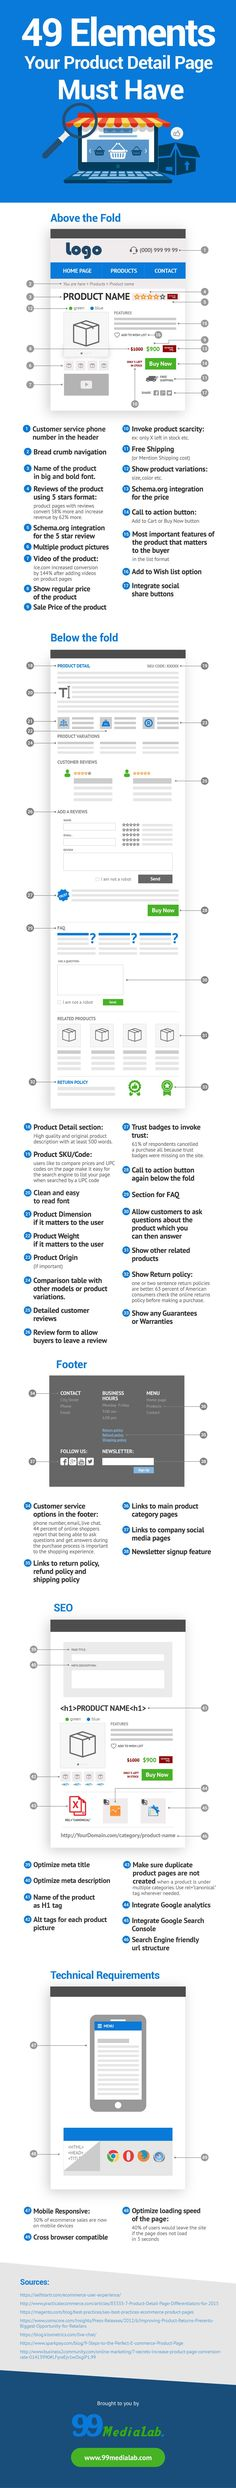 Ecommerce Tips: 49 Elements of a Successful Product Page [Infographic] - Red Website Design Blog